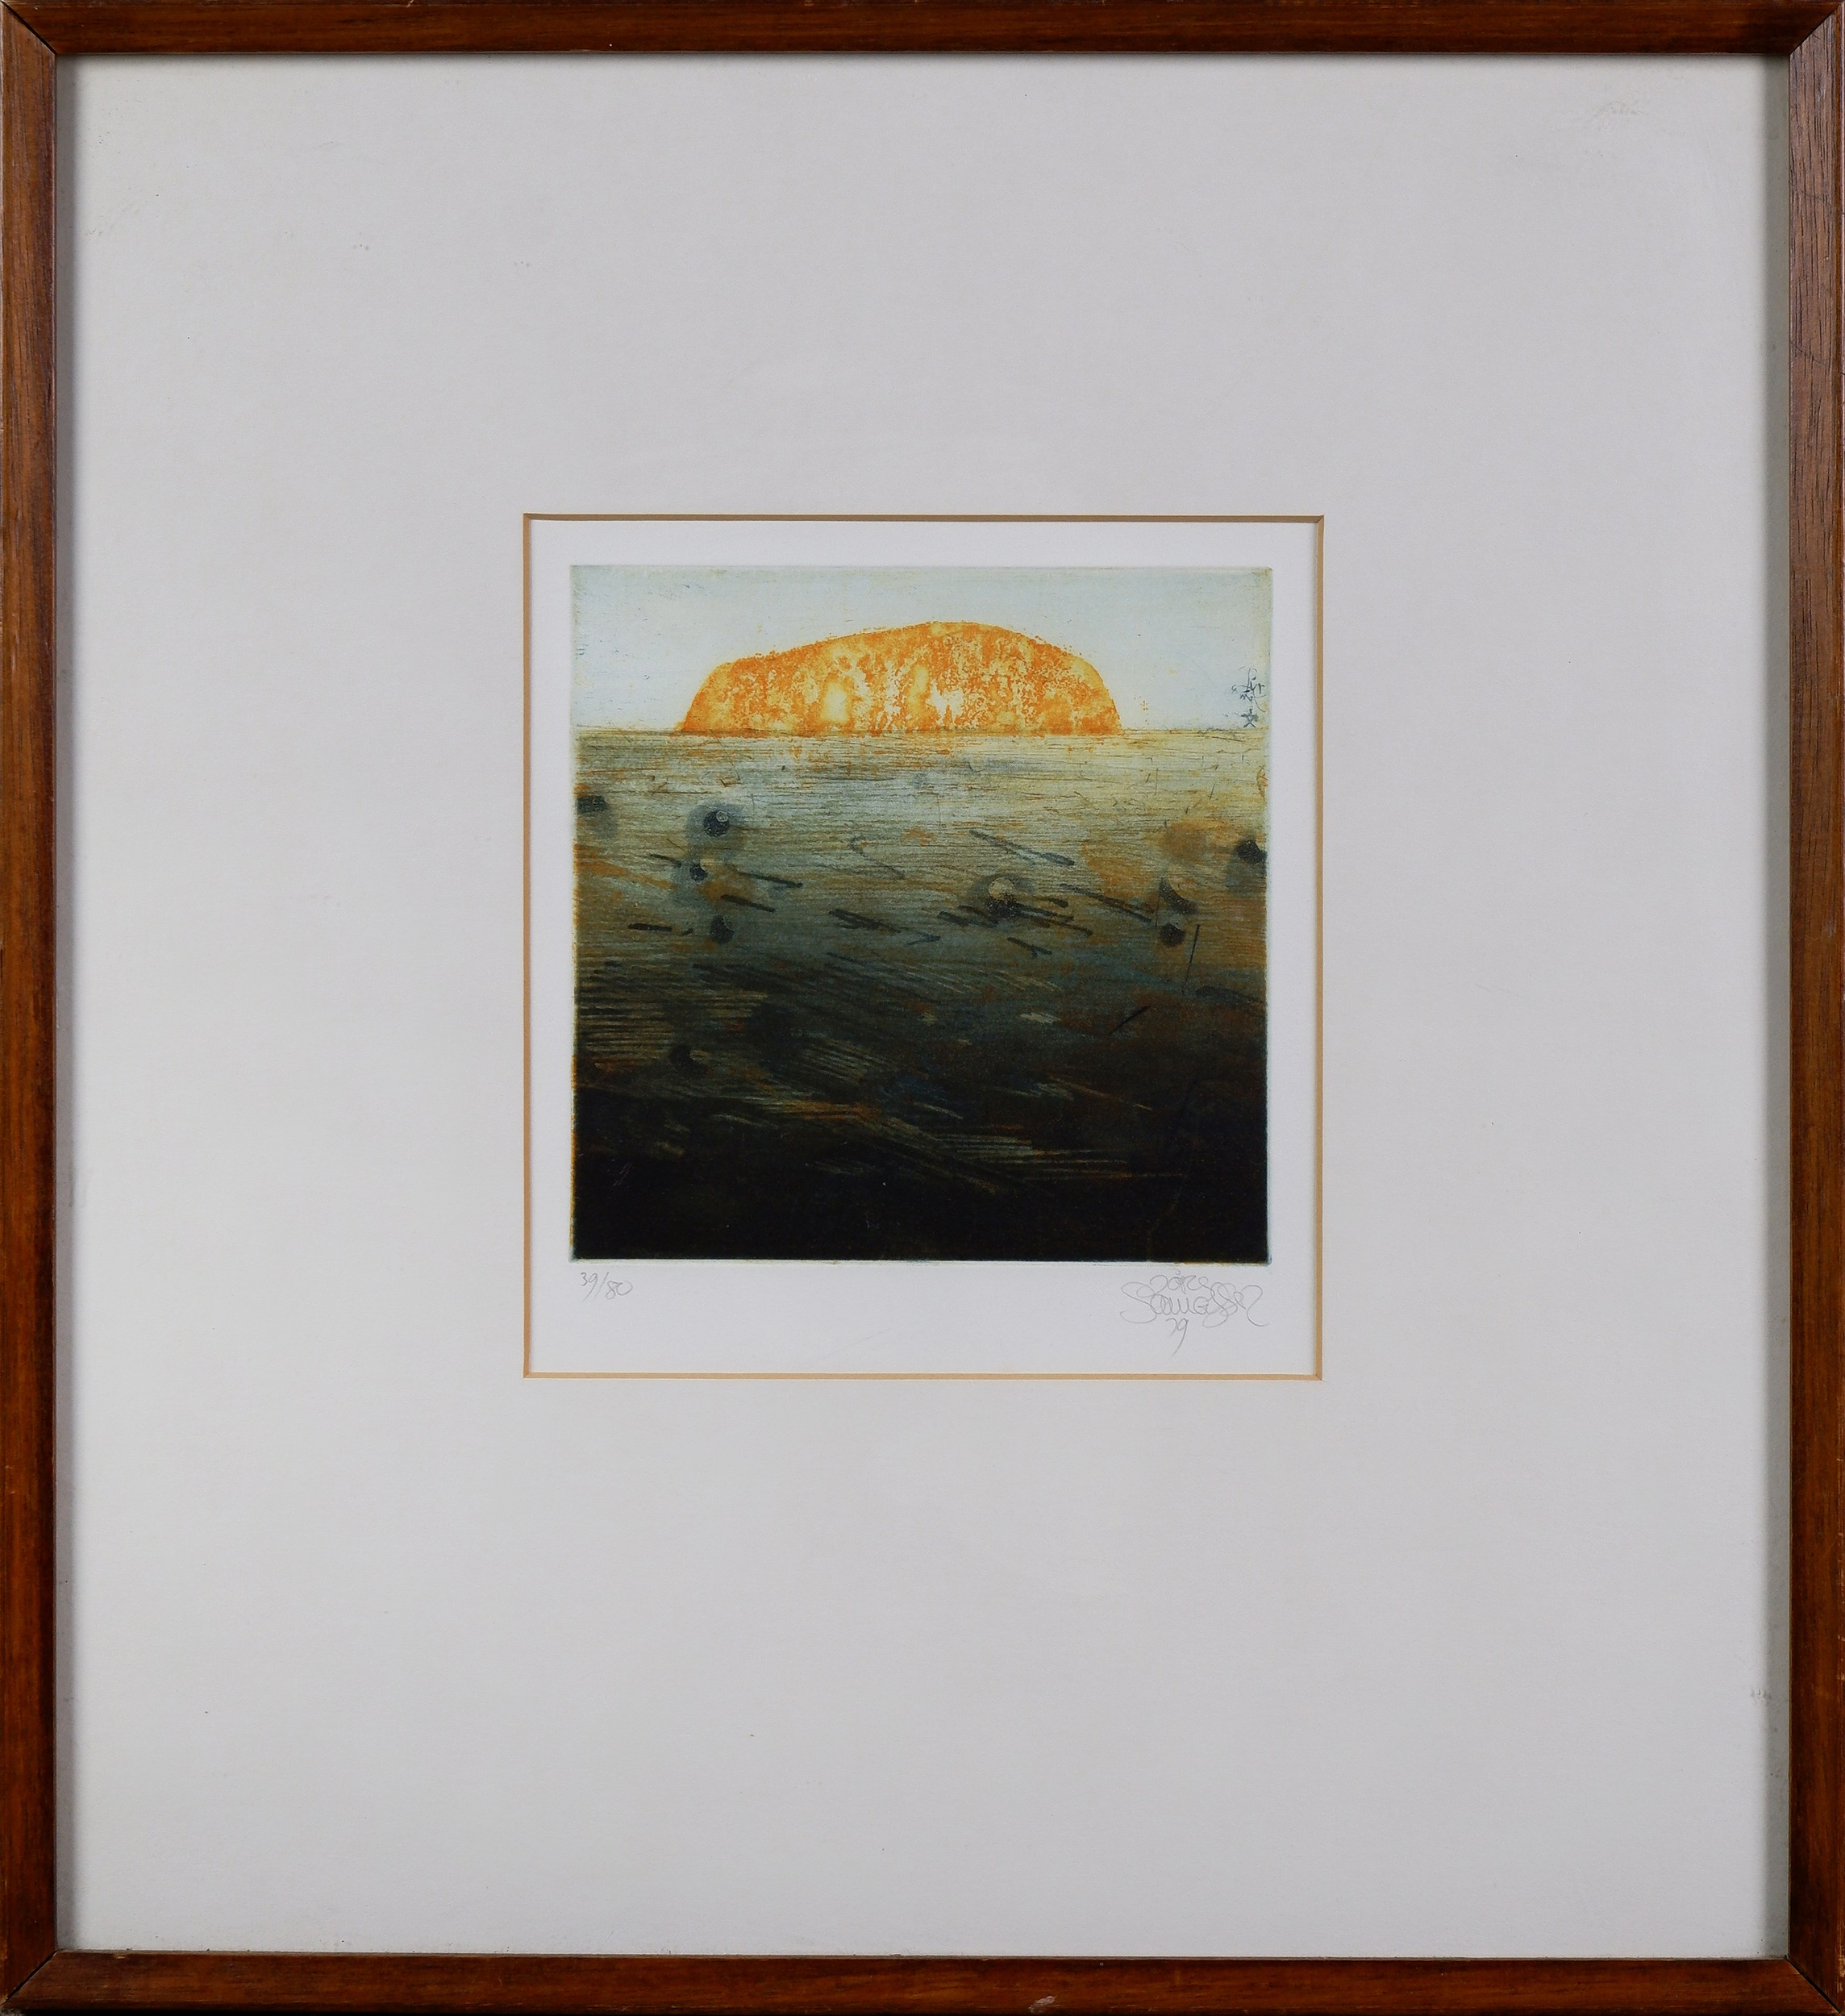 'Jorg Schmeisser (1942-2012), Small Ayers Rock 1979, Etching, Edition 39/80, 15 x 14 cm (image size)'